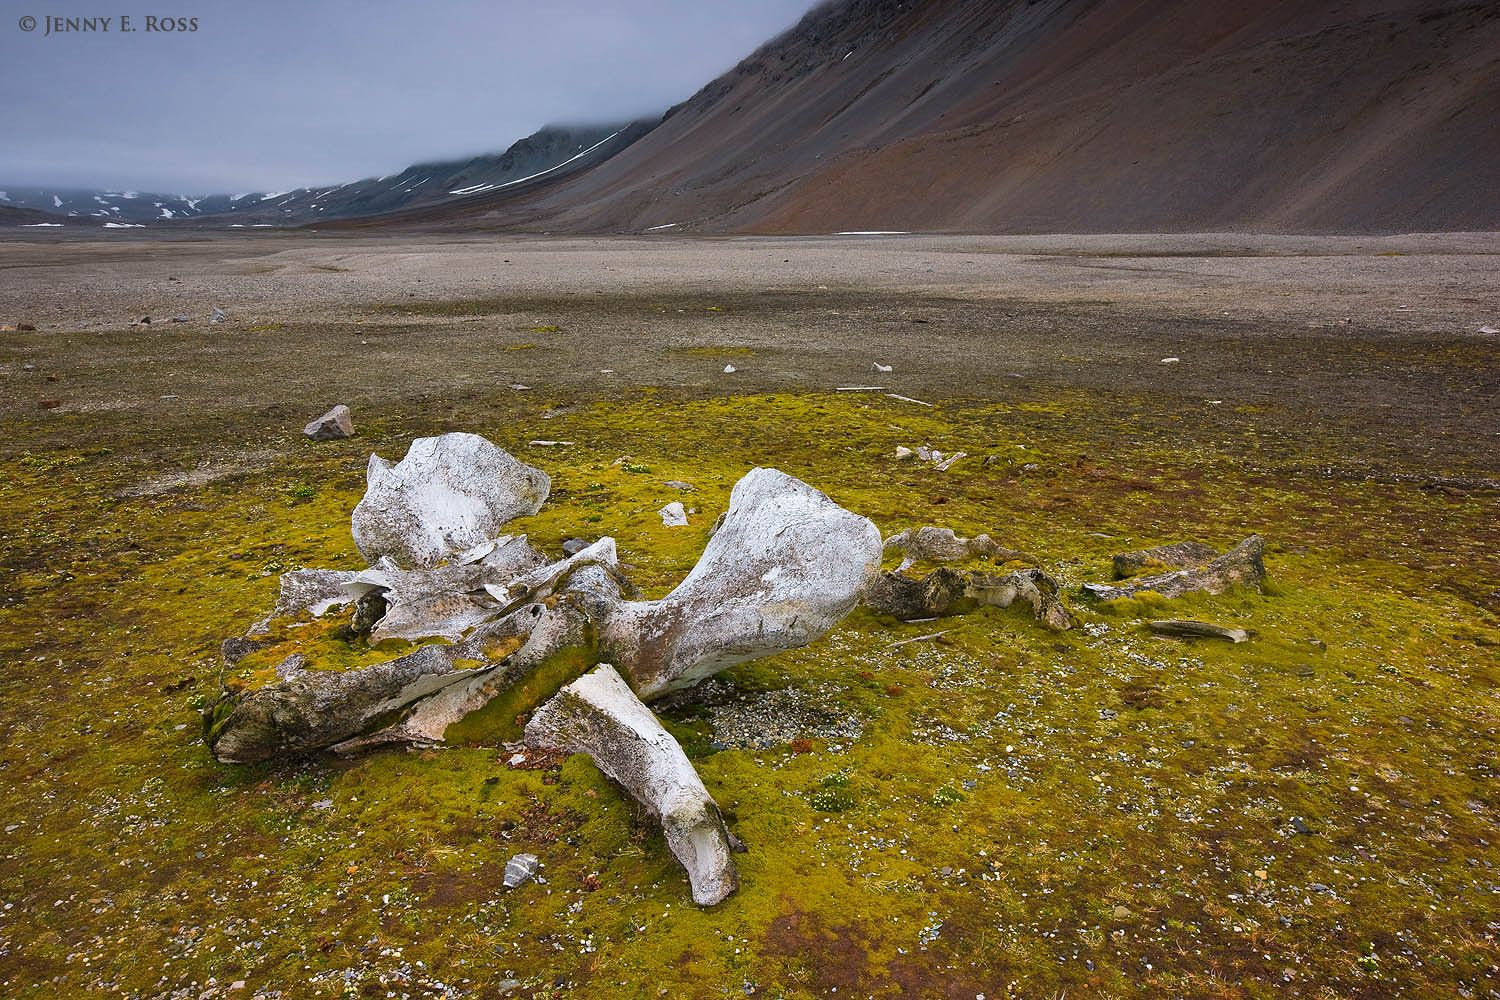 Ancient bowhead whale (Balaena mysticetus) bones slowly decomposing near the remains of a 17th century whaling station at Gashamna in Hornsund on the island of Spitsbergen, Svalbard Archipelago, Norway.